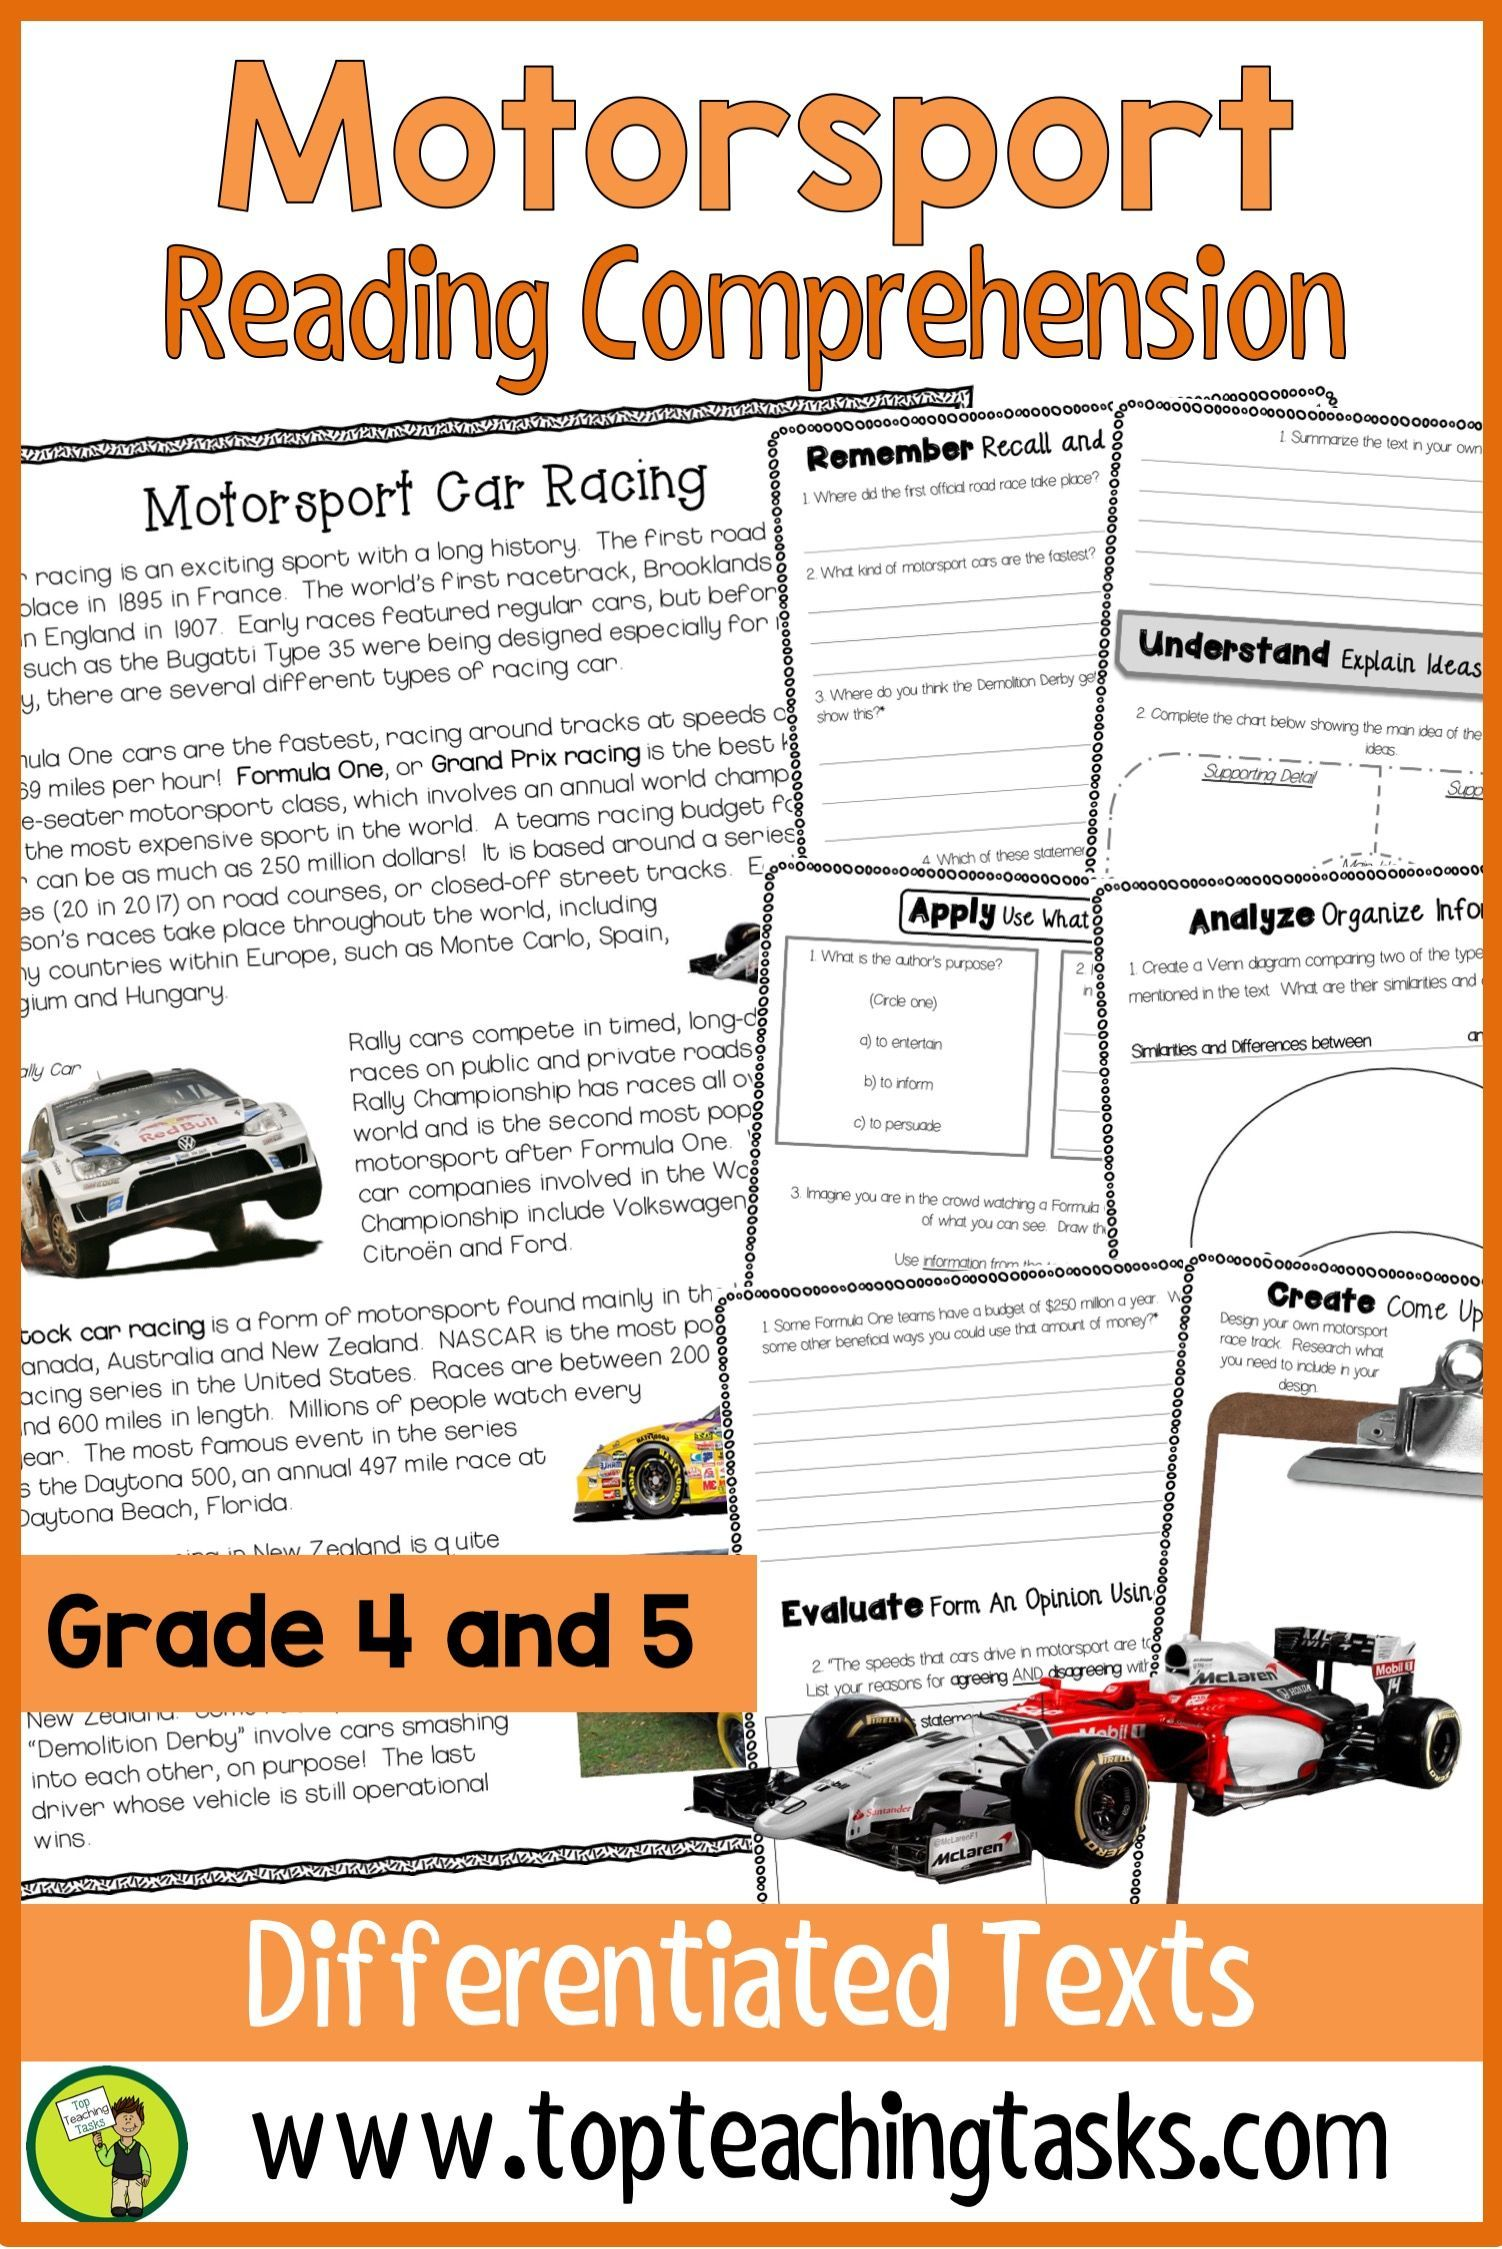 Motorsport Reading Comprehension Passages And Questions In 2021 Reading Comprehension Reading Comprehension Passages Comprehension Passage [ 2249 x 1502 Pixel ]